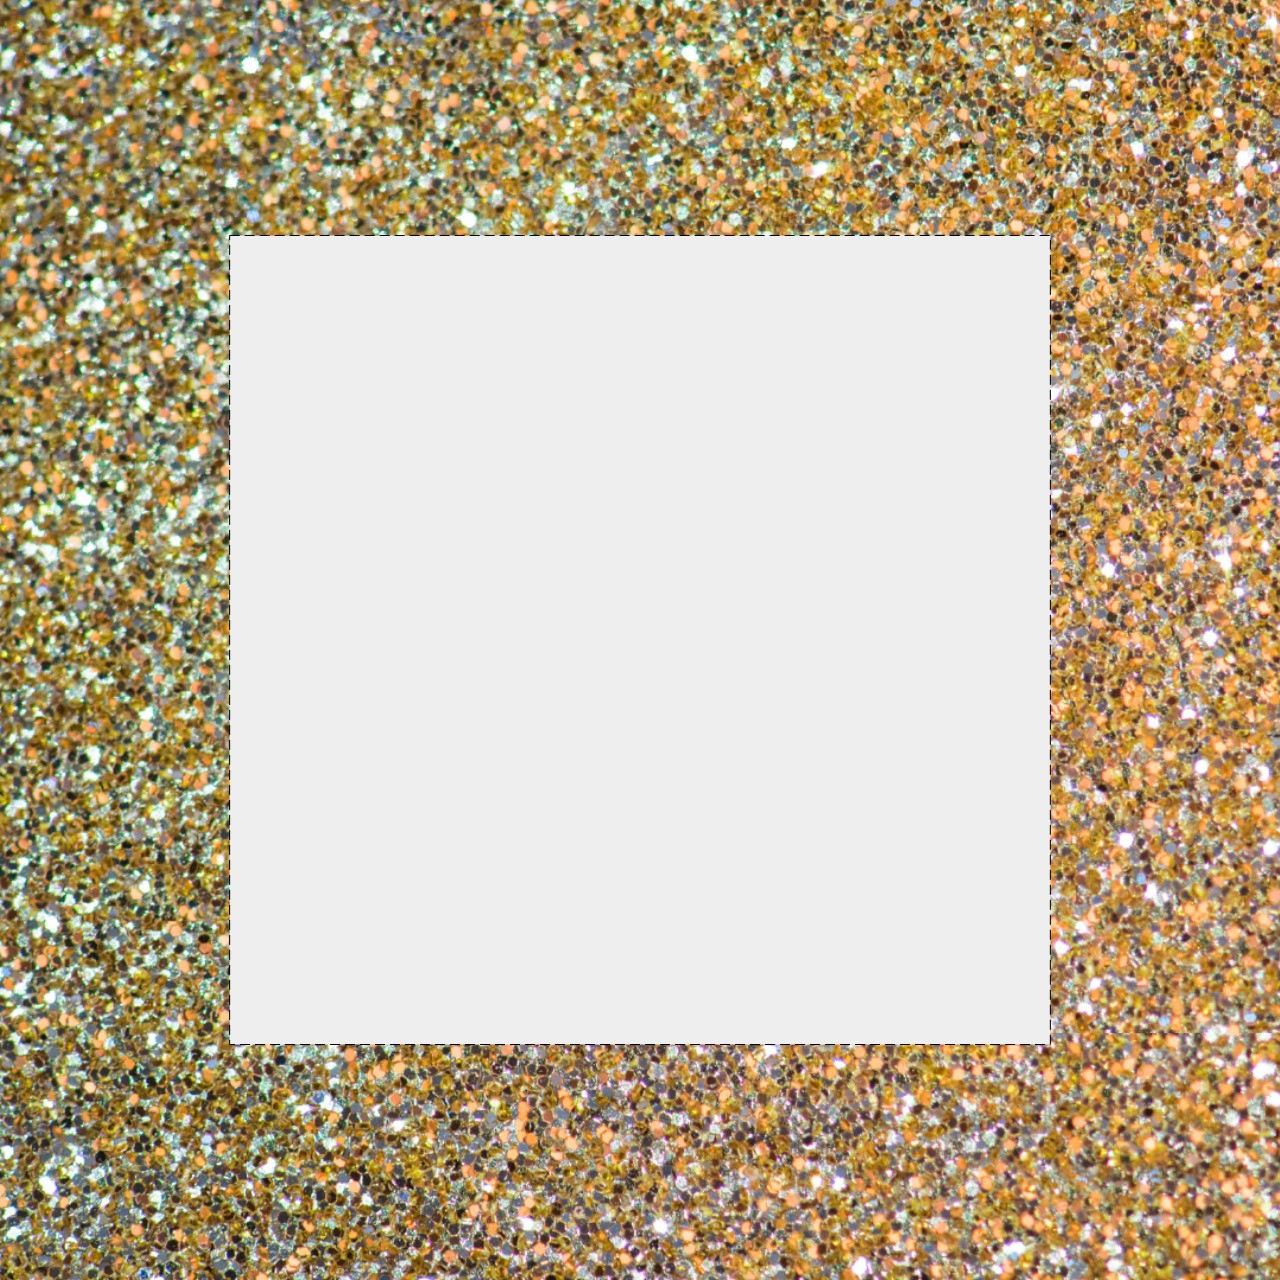 Instagram Border Template: Gold and Silver Glitter